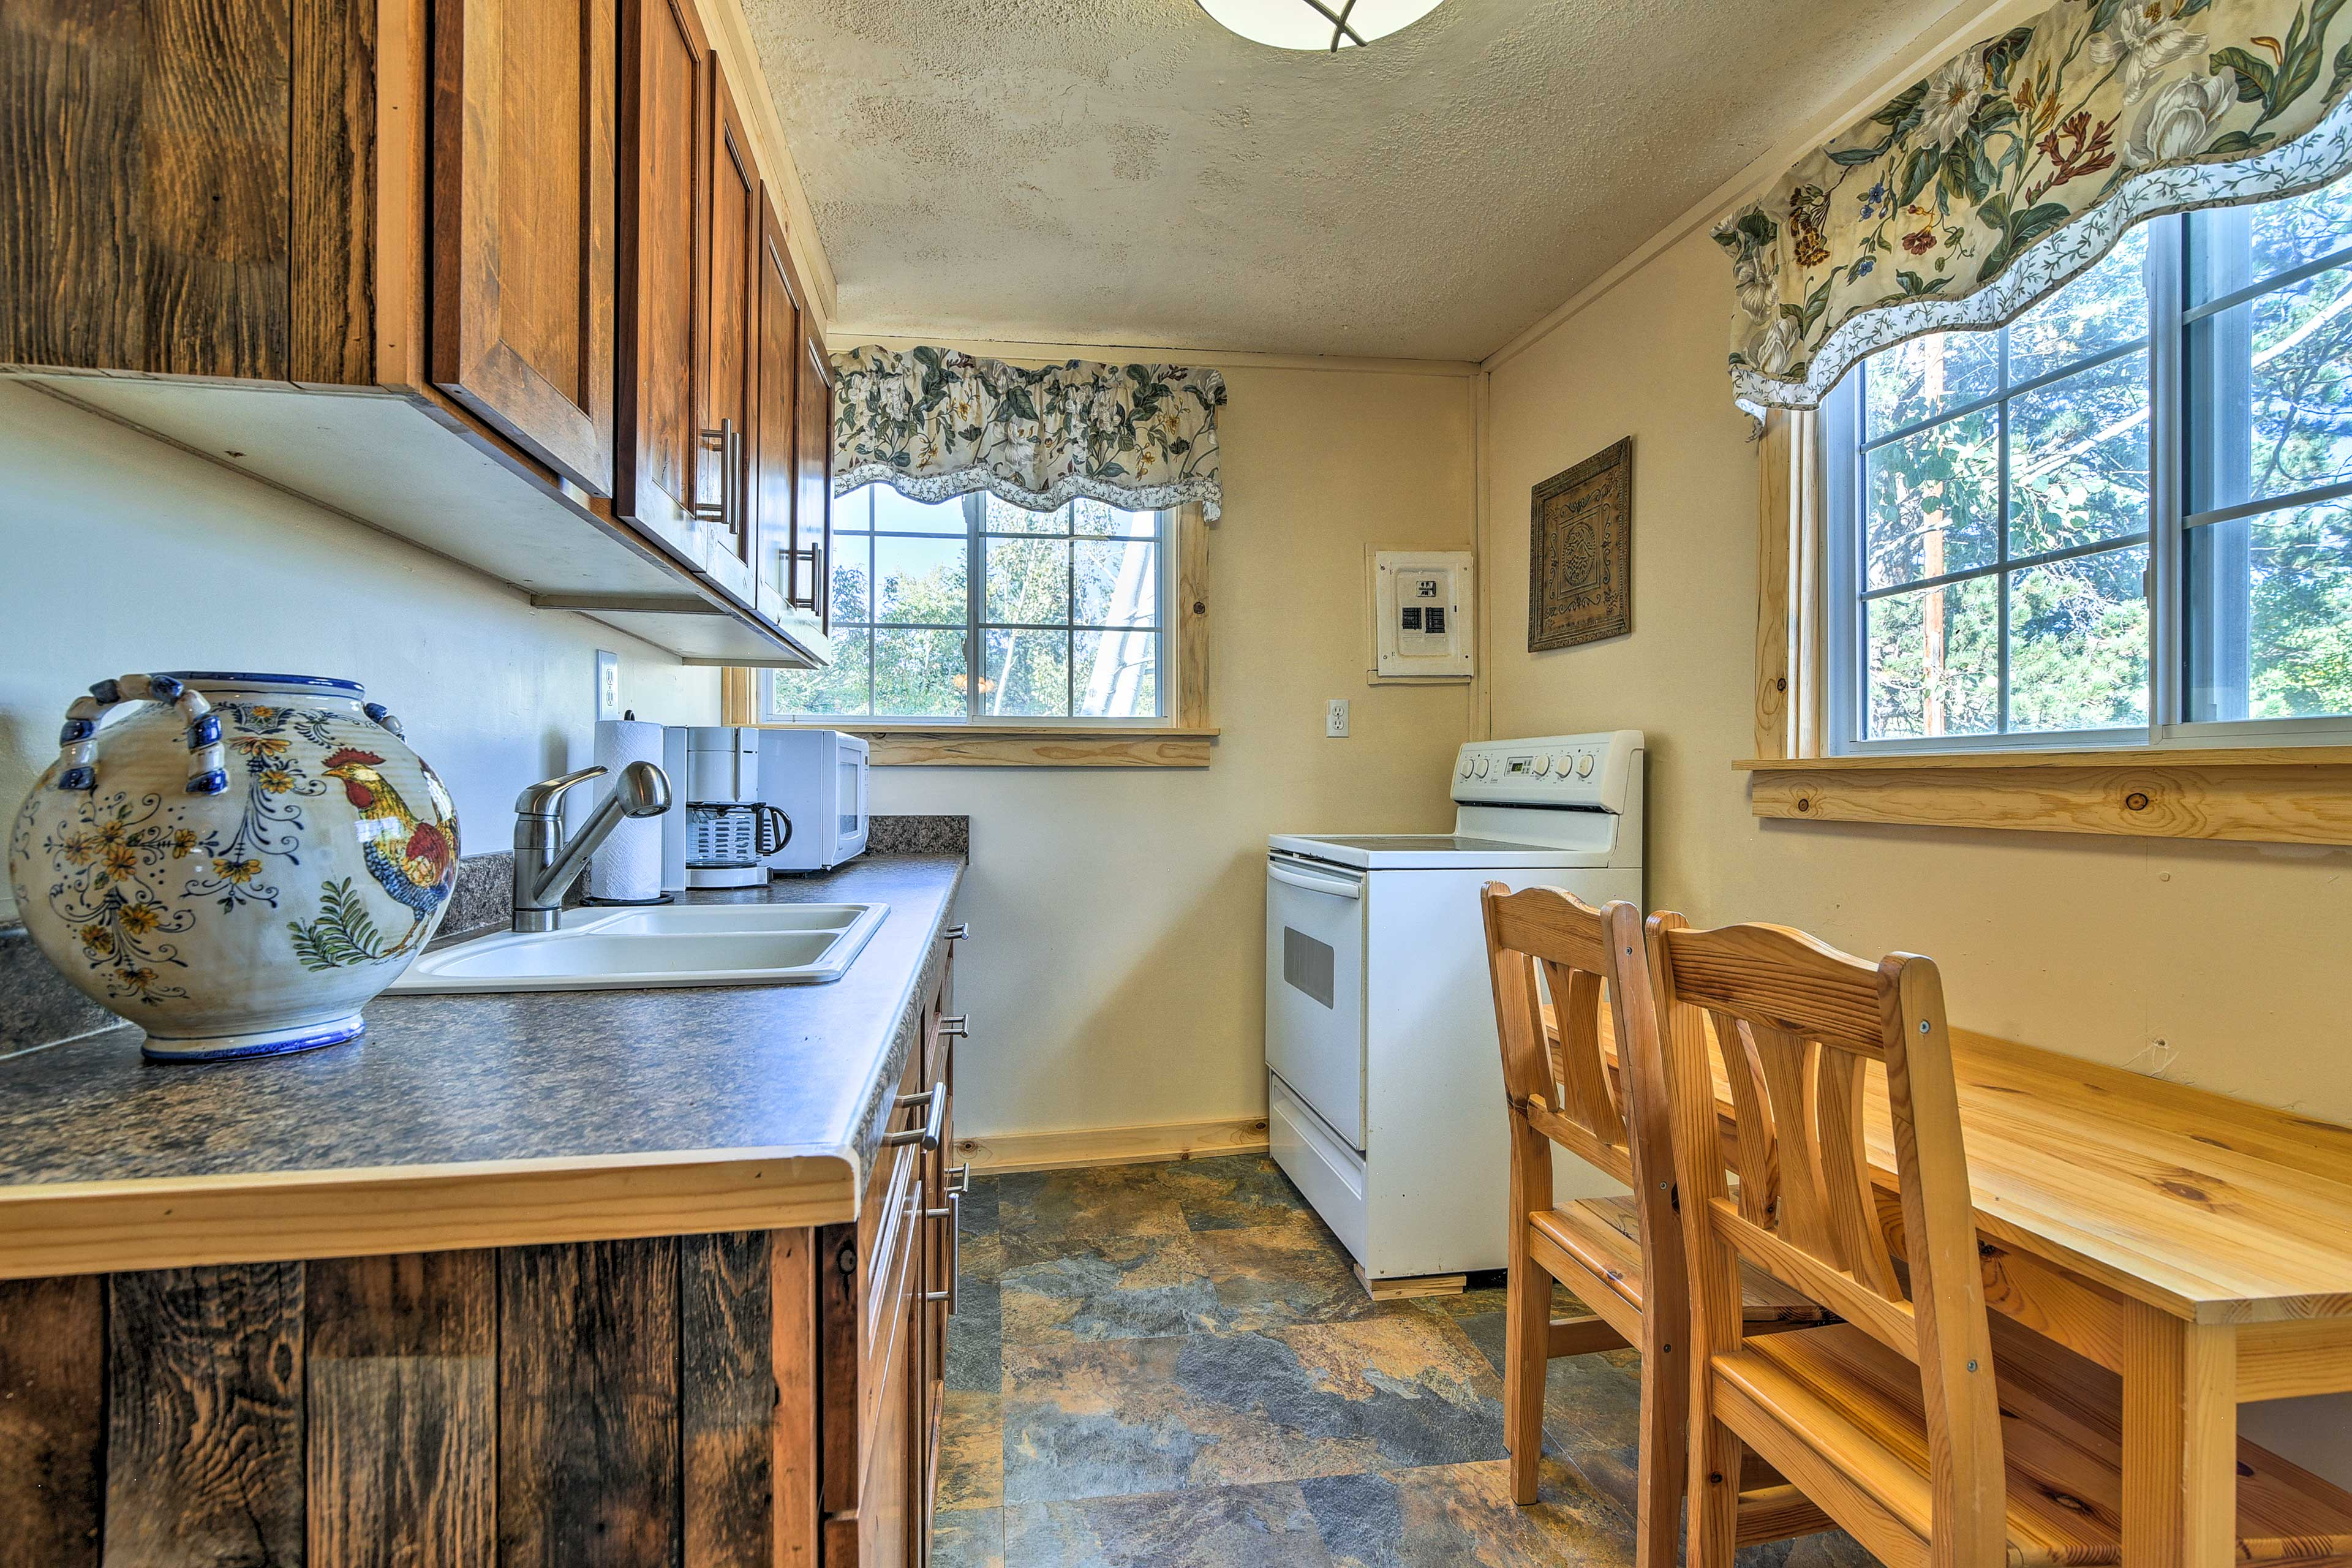 The counter space will help you prepare meals.